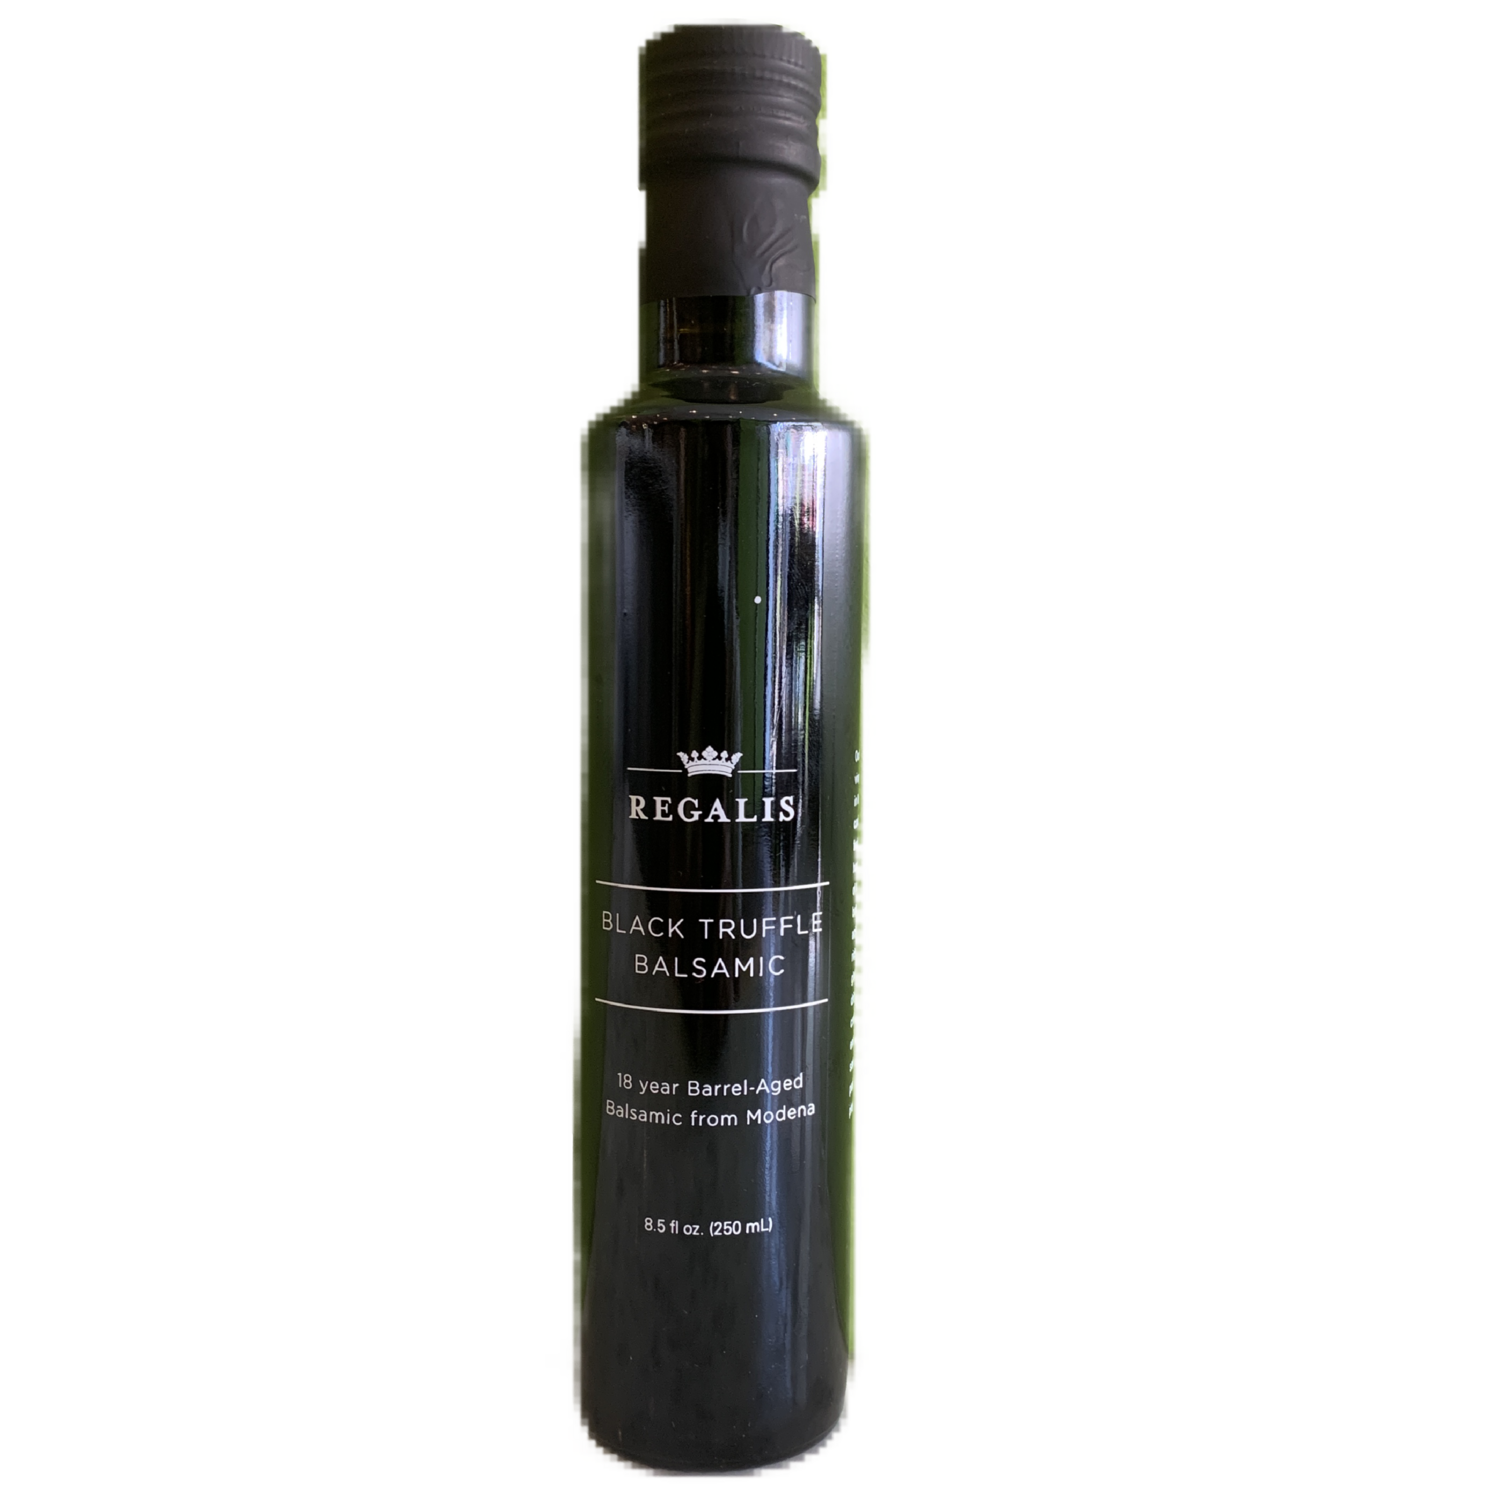 REGALIS black truffle balsamic